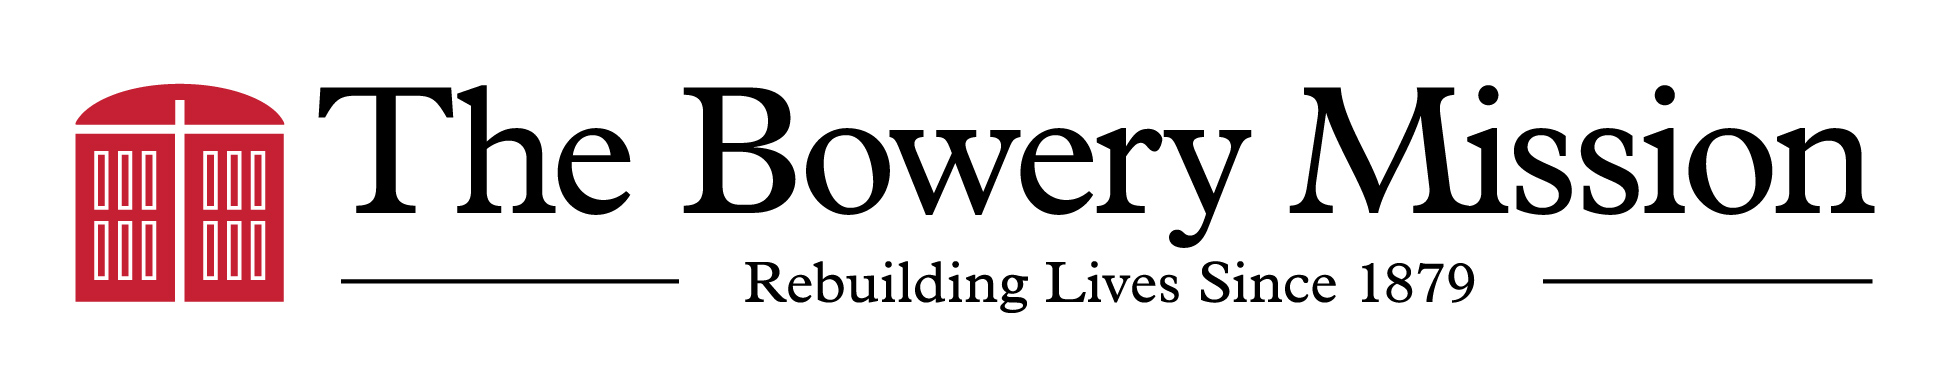 The Bowery Mission logo linear